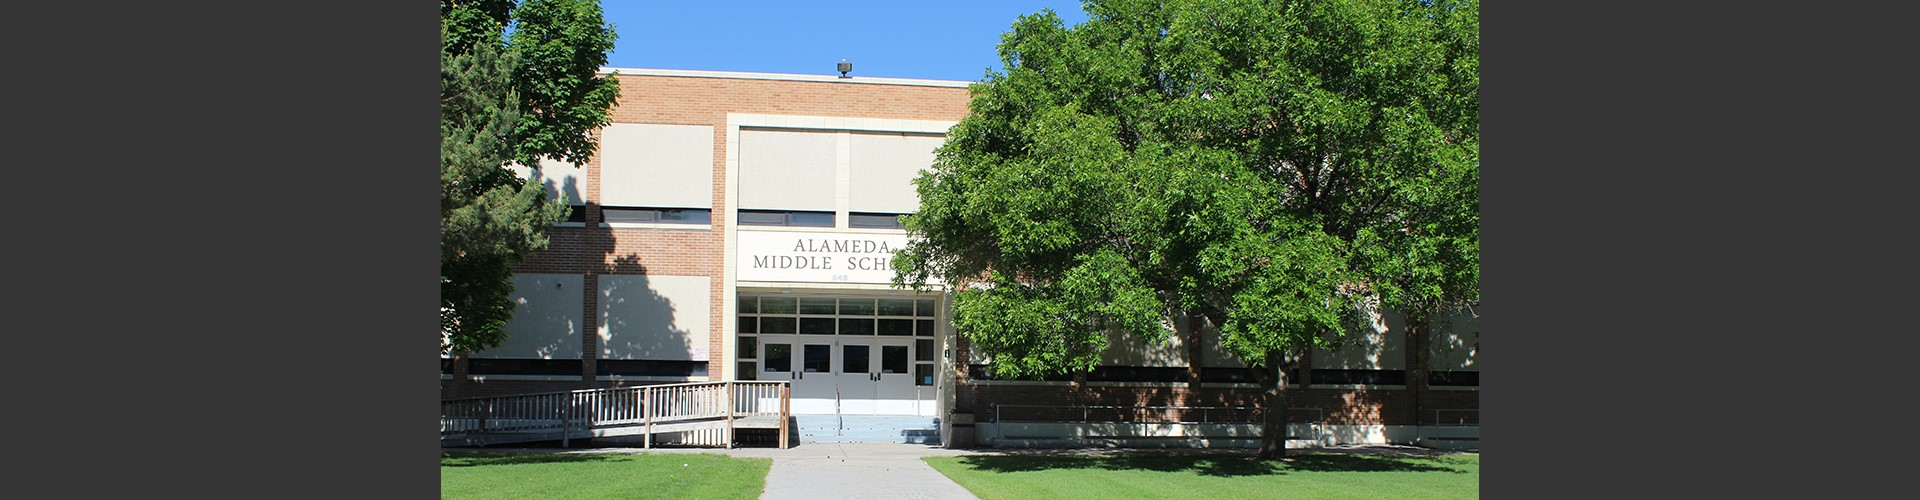 Front of Alameda Middle School